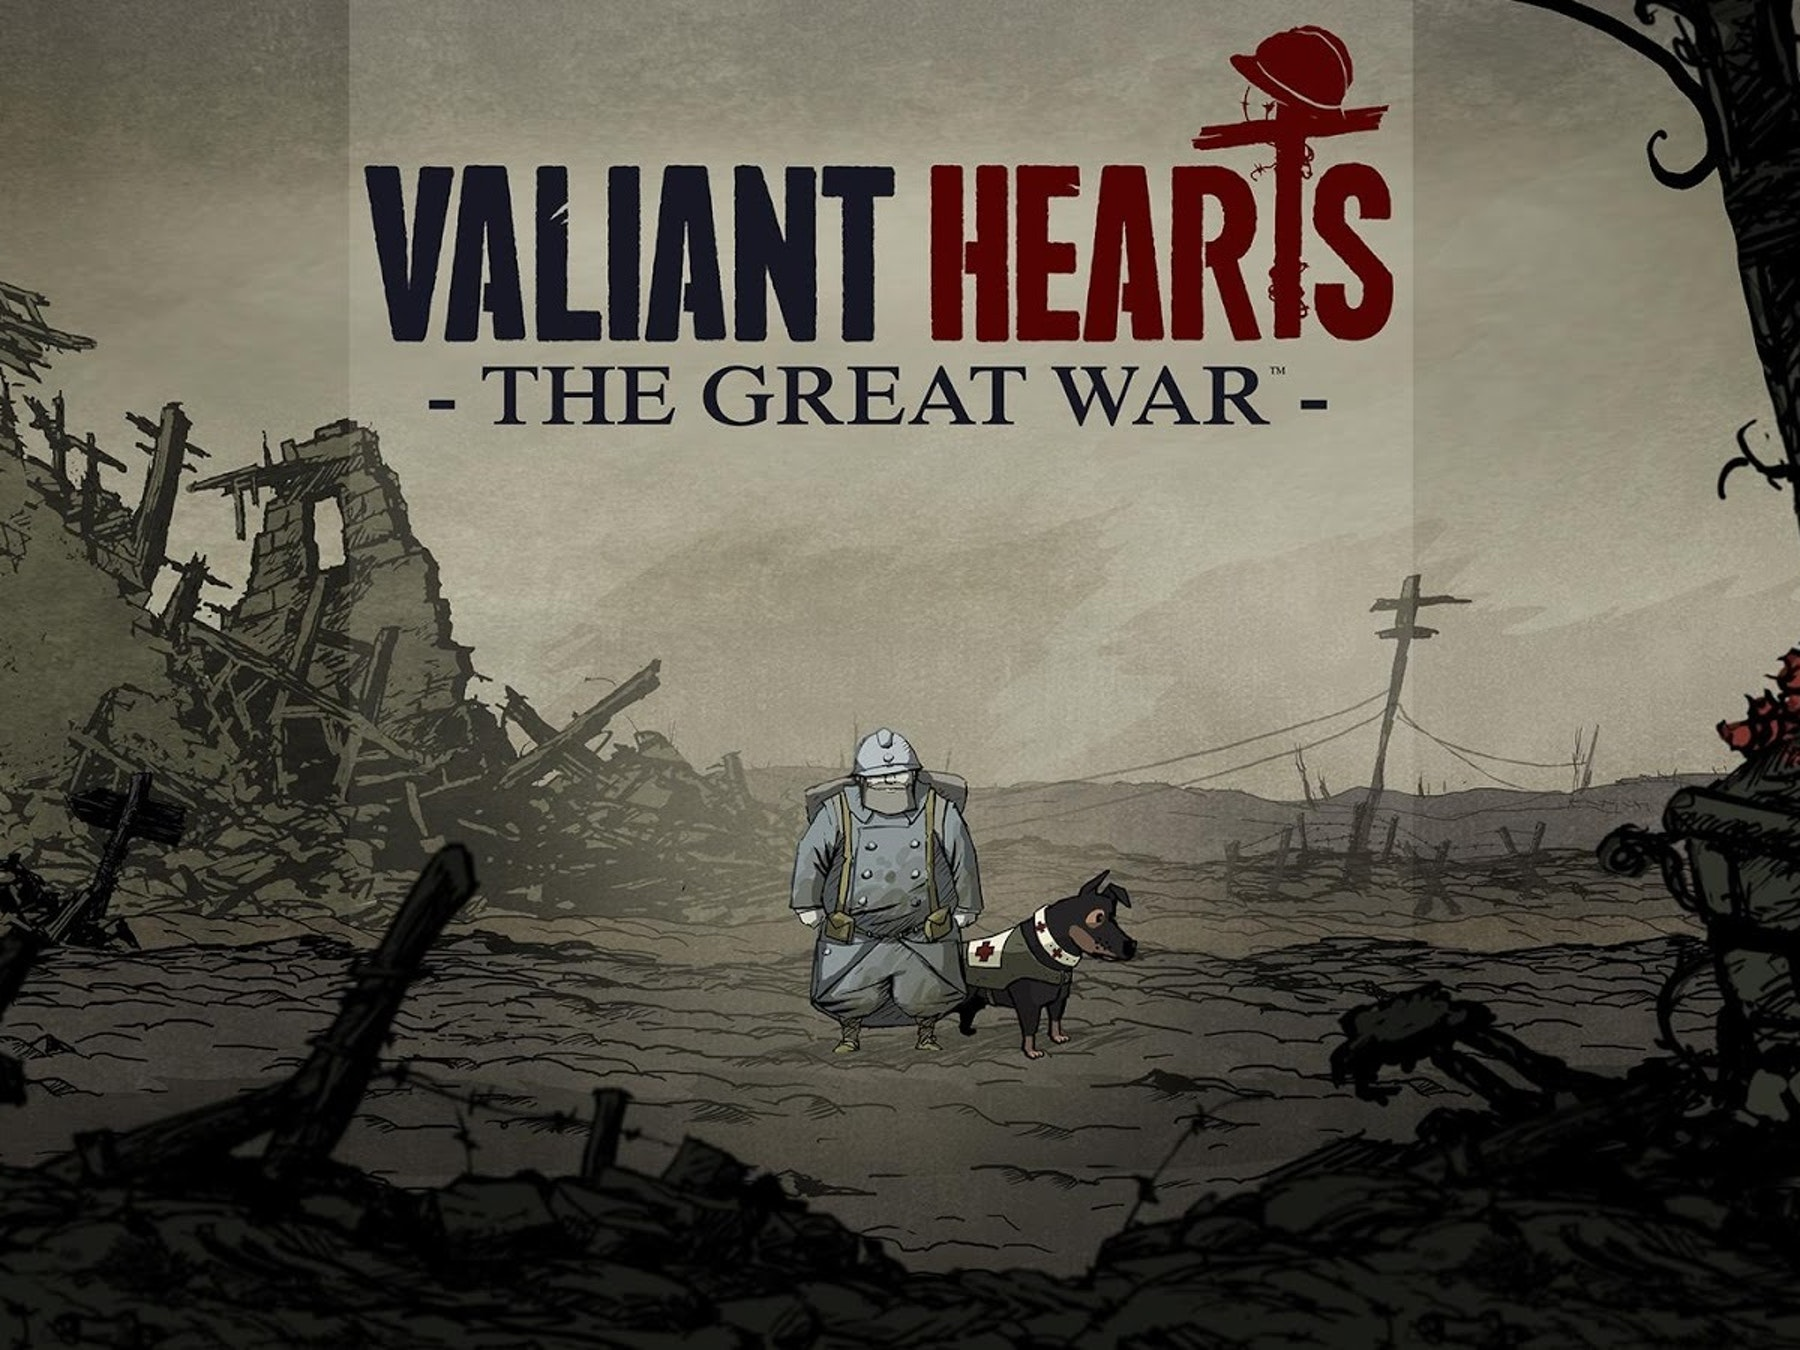 'Valiant Hearts' Took the Necessary Time to Explain WWI